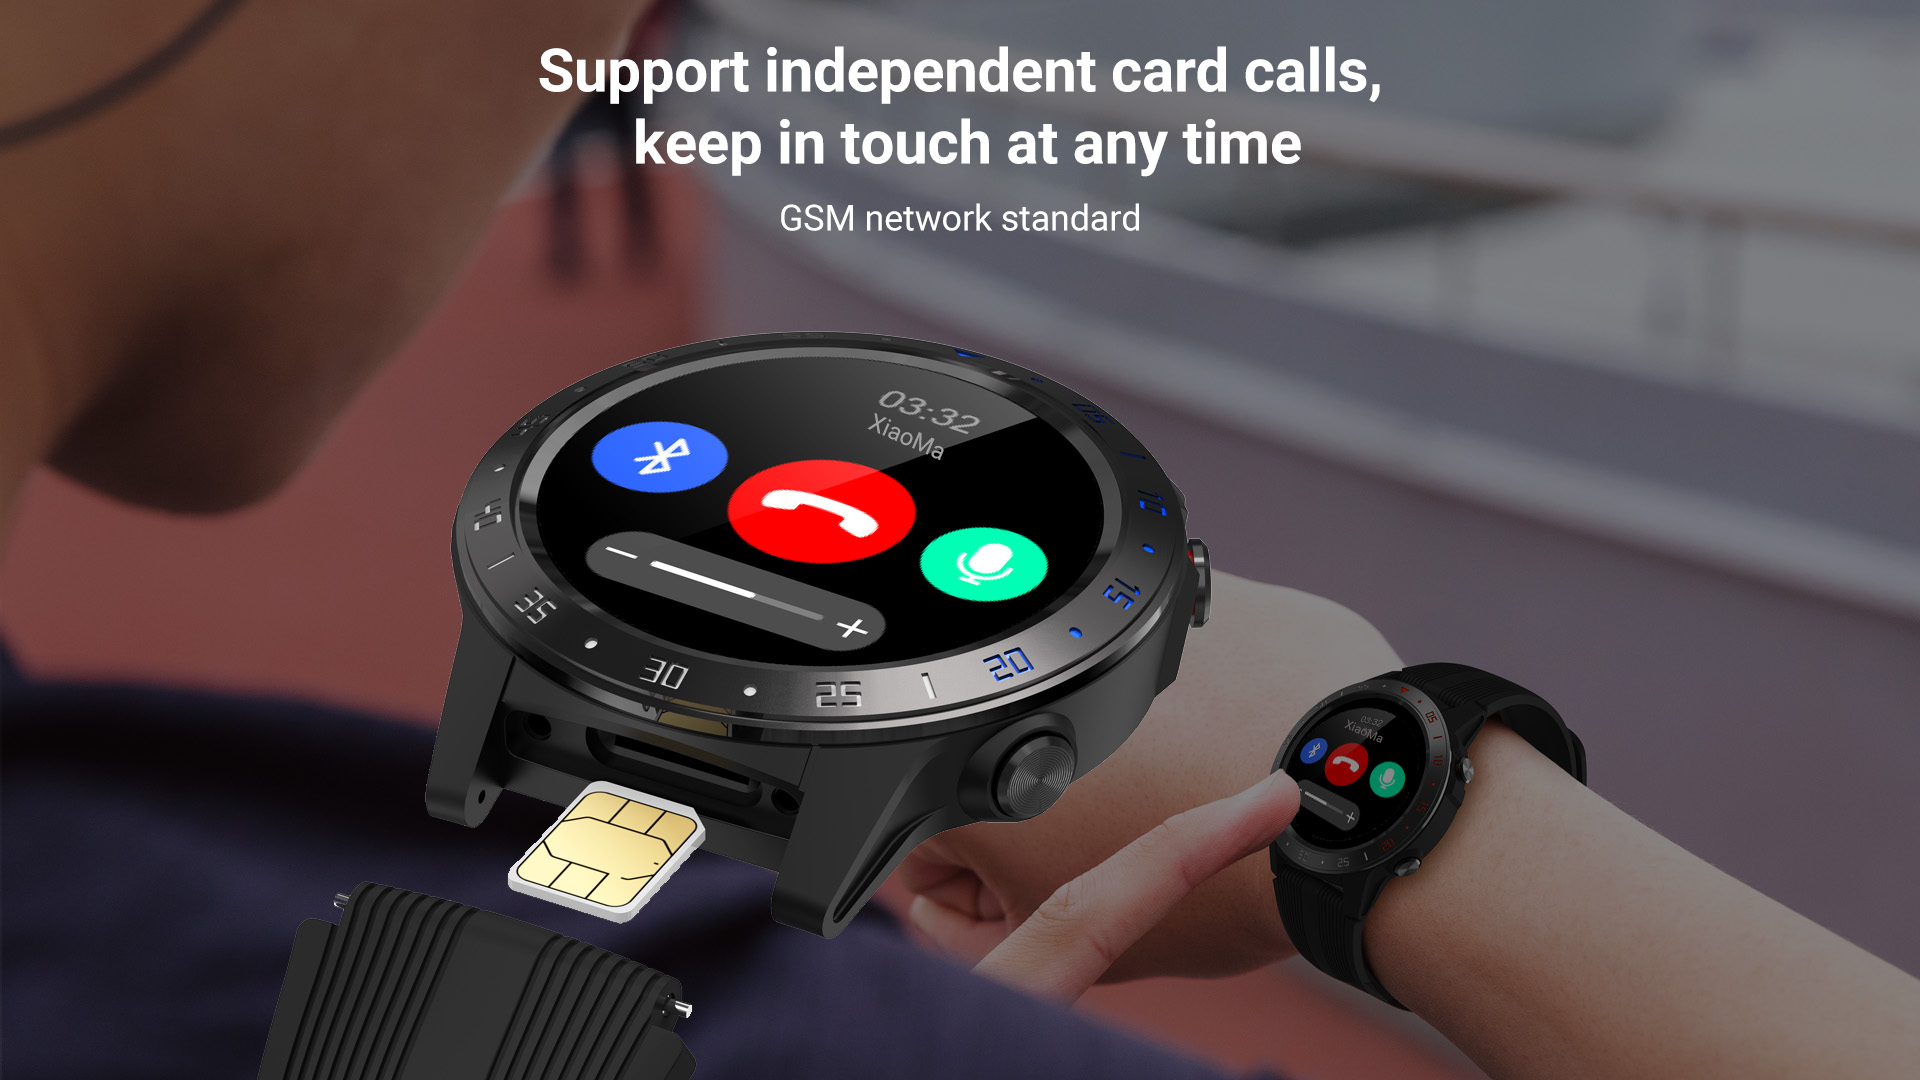 H51715a25bb0f48fca9e8079e553e69d1o GPS Smartwatch Men With SIM Card Fitness Compass Barometer Altitude M5 Mi Smart Watch Men Women 2021 for Android Xiaomi